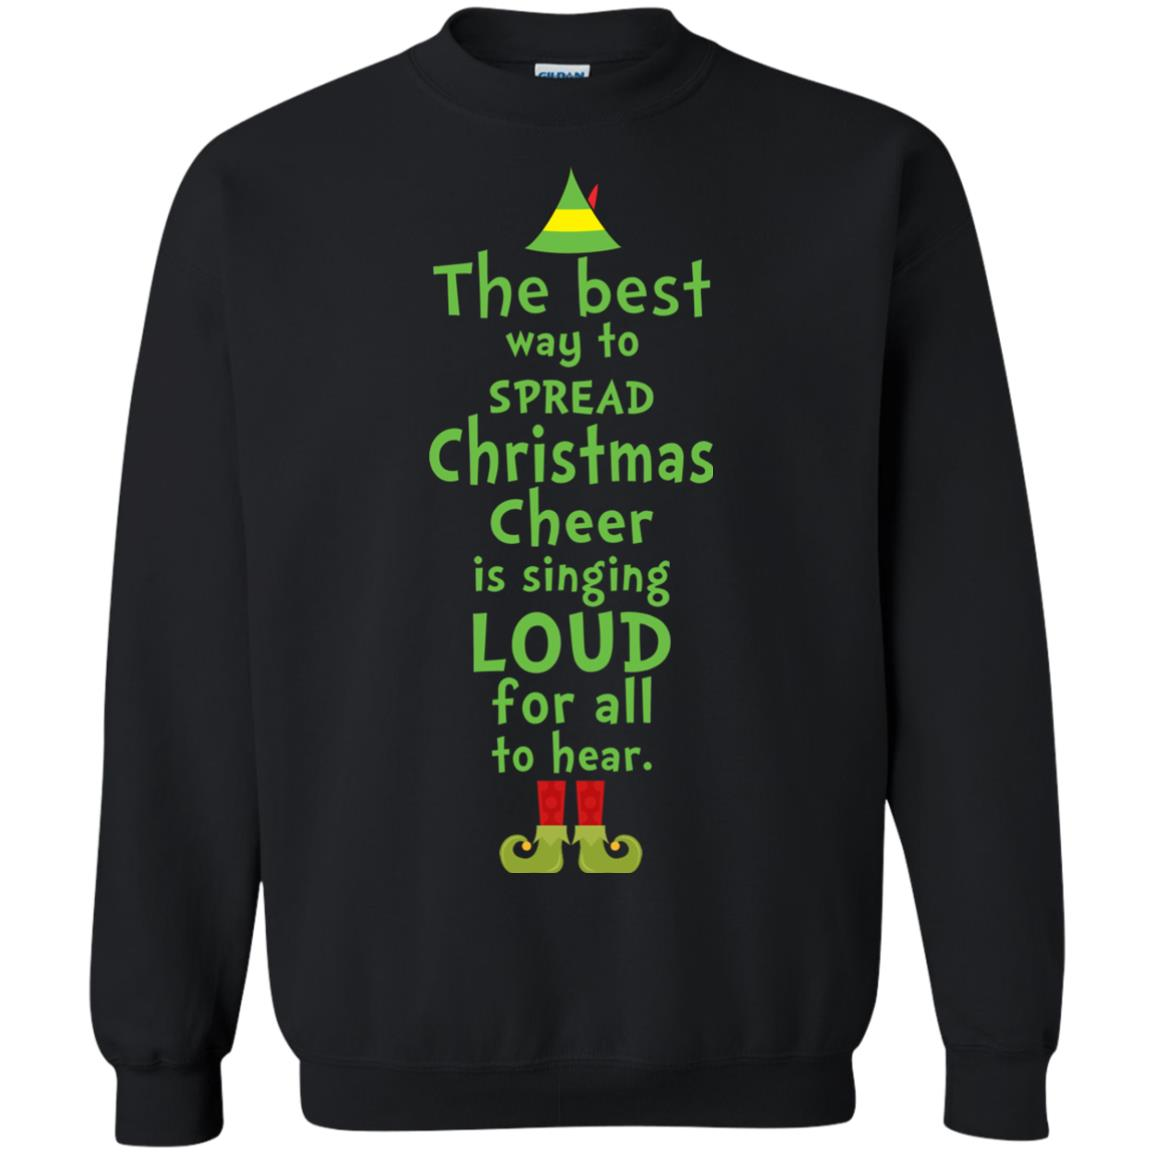 image 2461 - The best way to spread Christmas cheer is singing loud for all to hear Sweater, Shirt